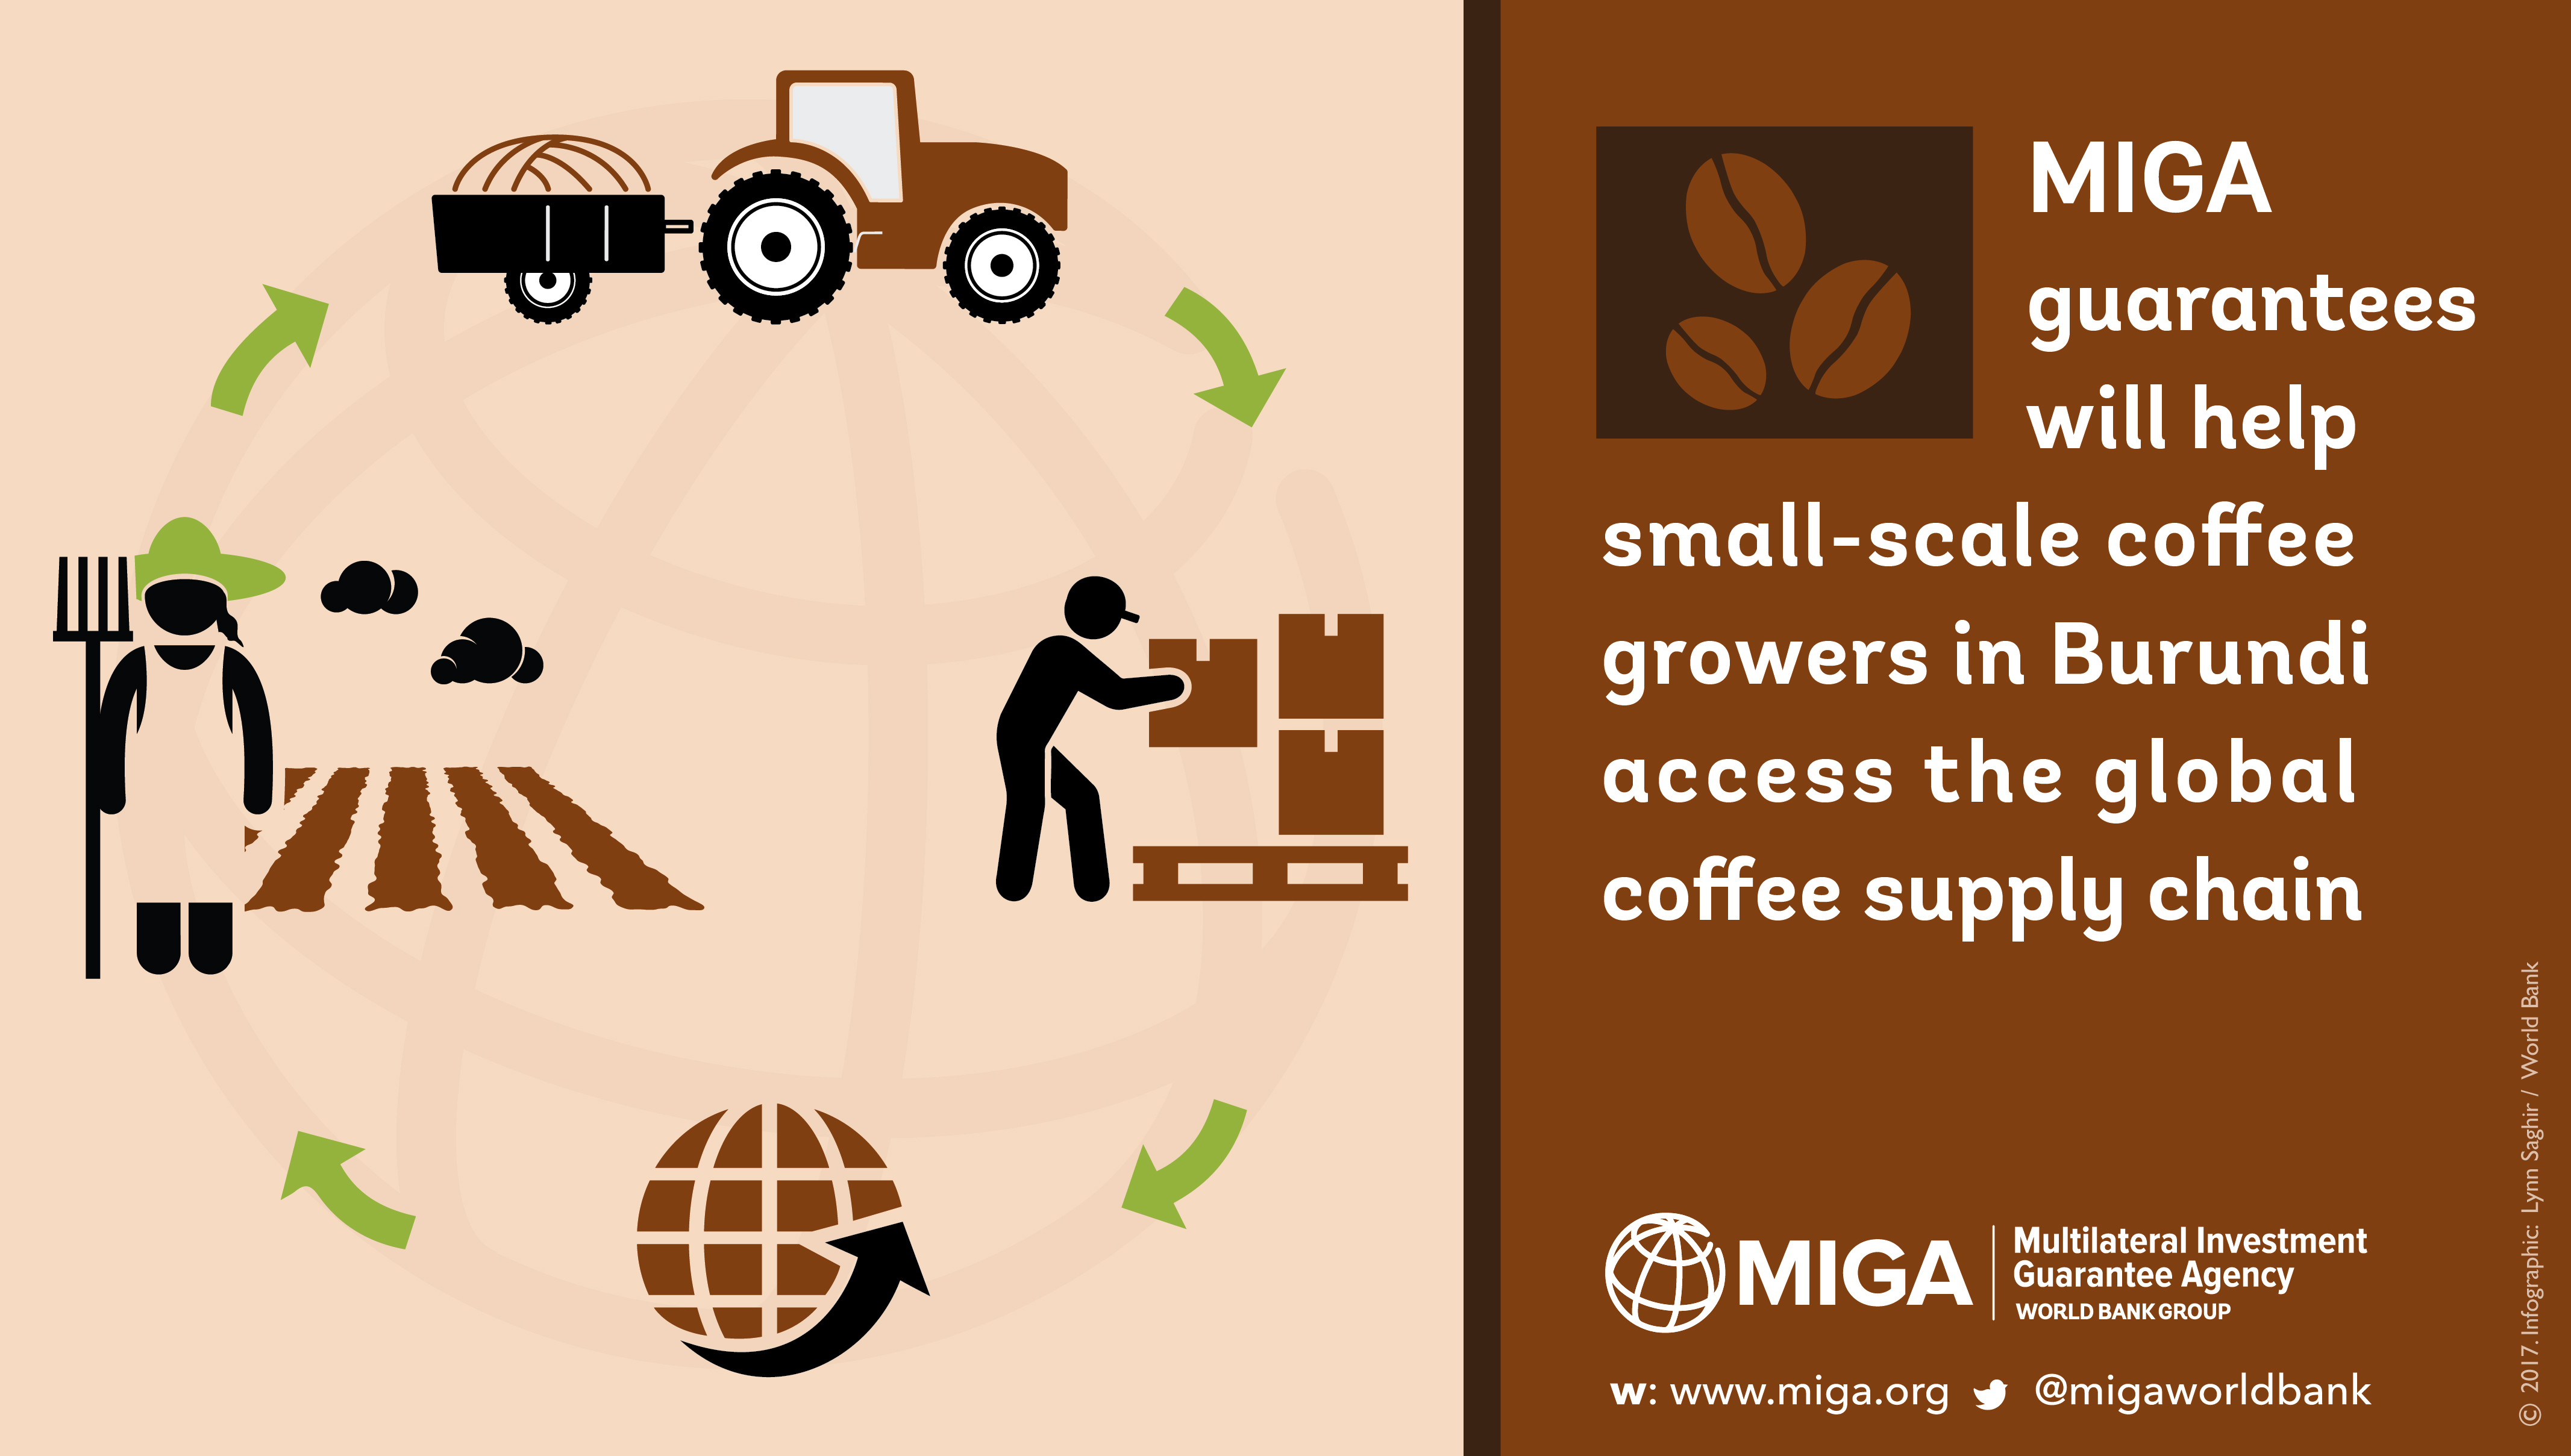 MIGA guarantees for Burundi coffee